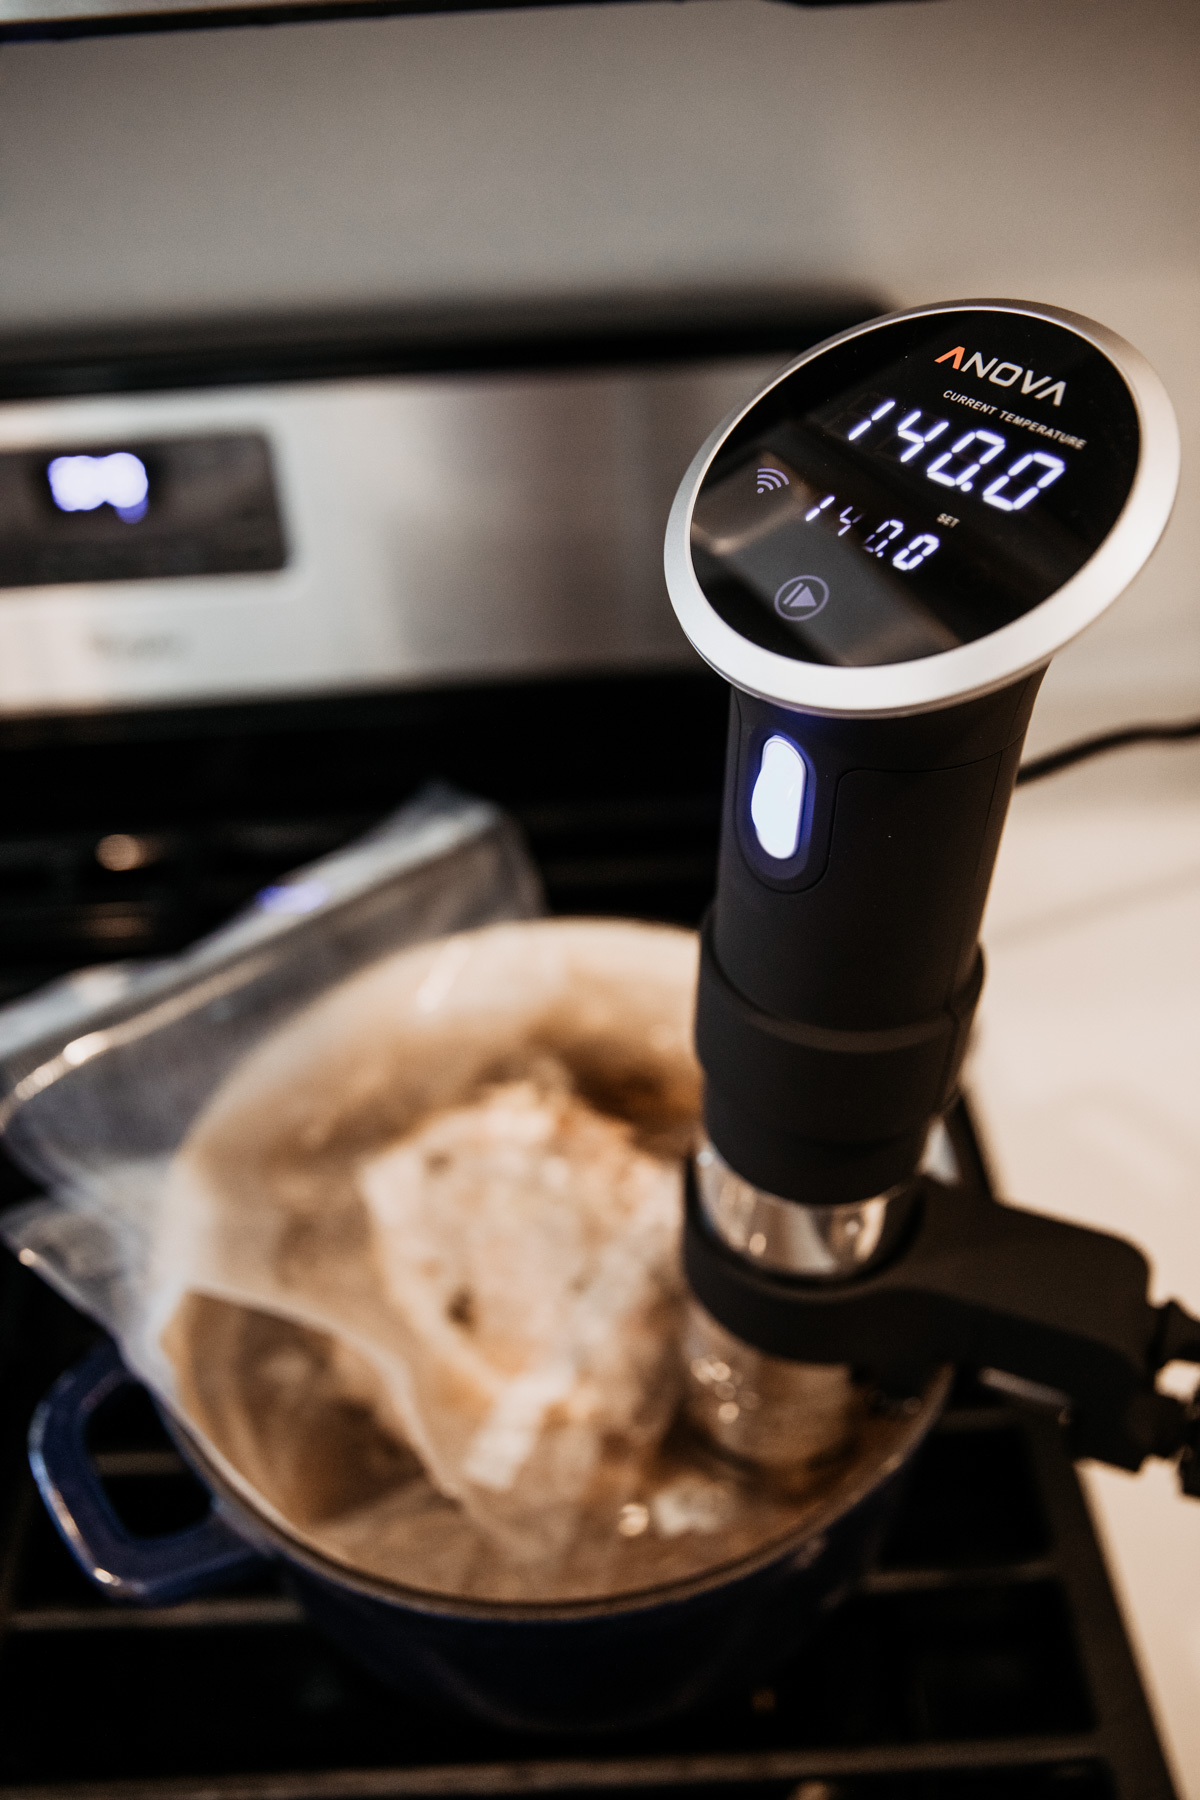 Sous Vide Recipes - FoodSaver Bags